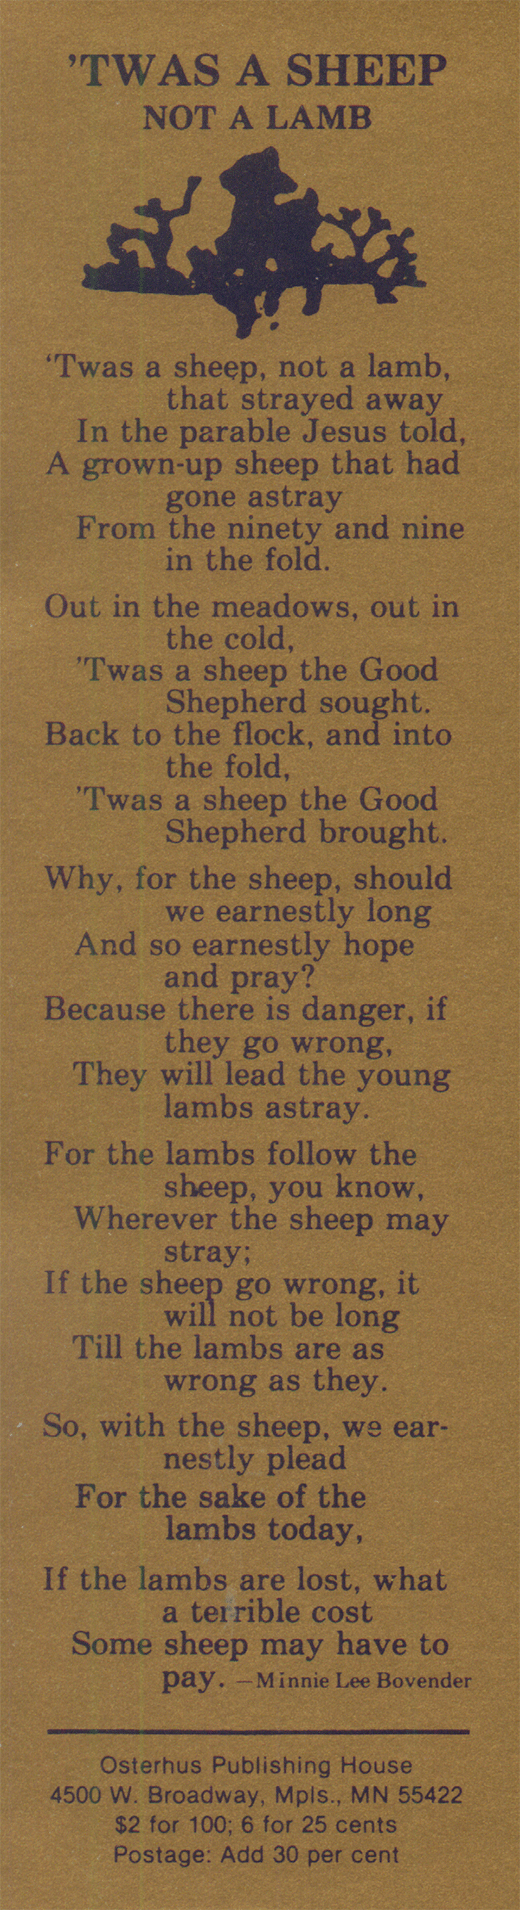 Twas A Sheep Not A Lamb